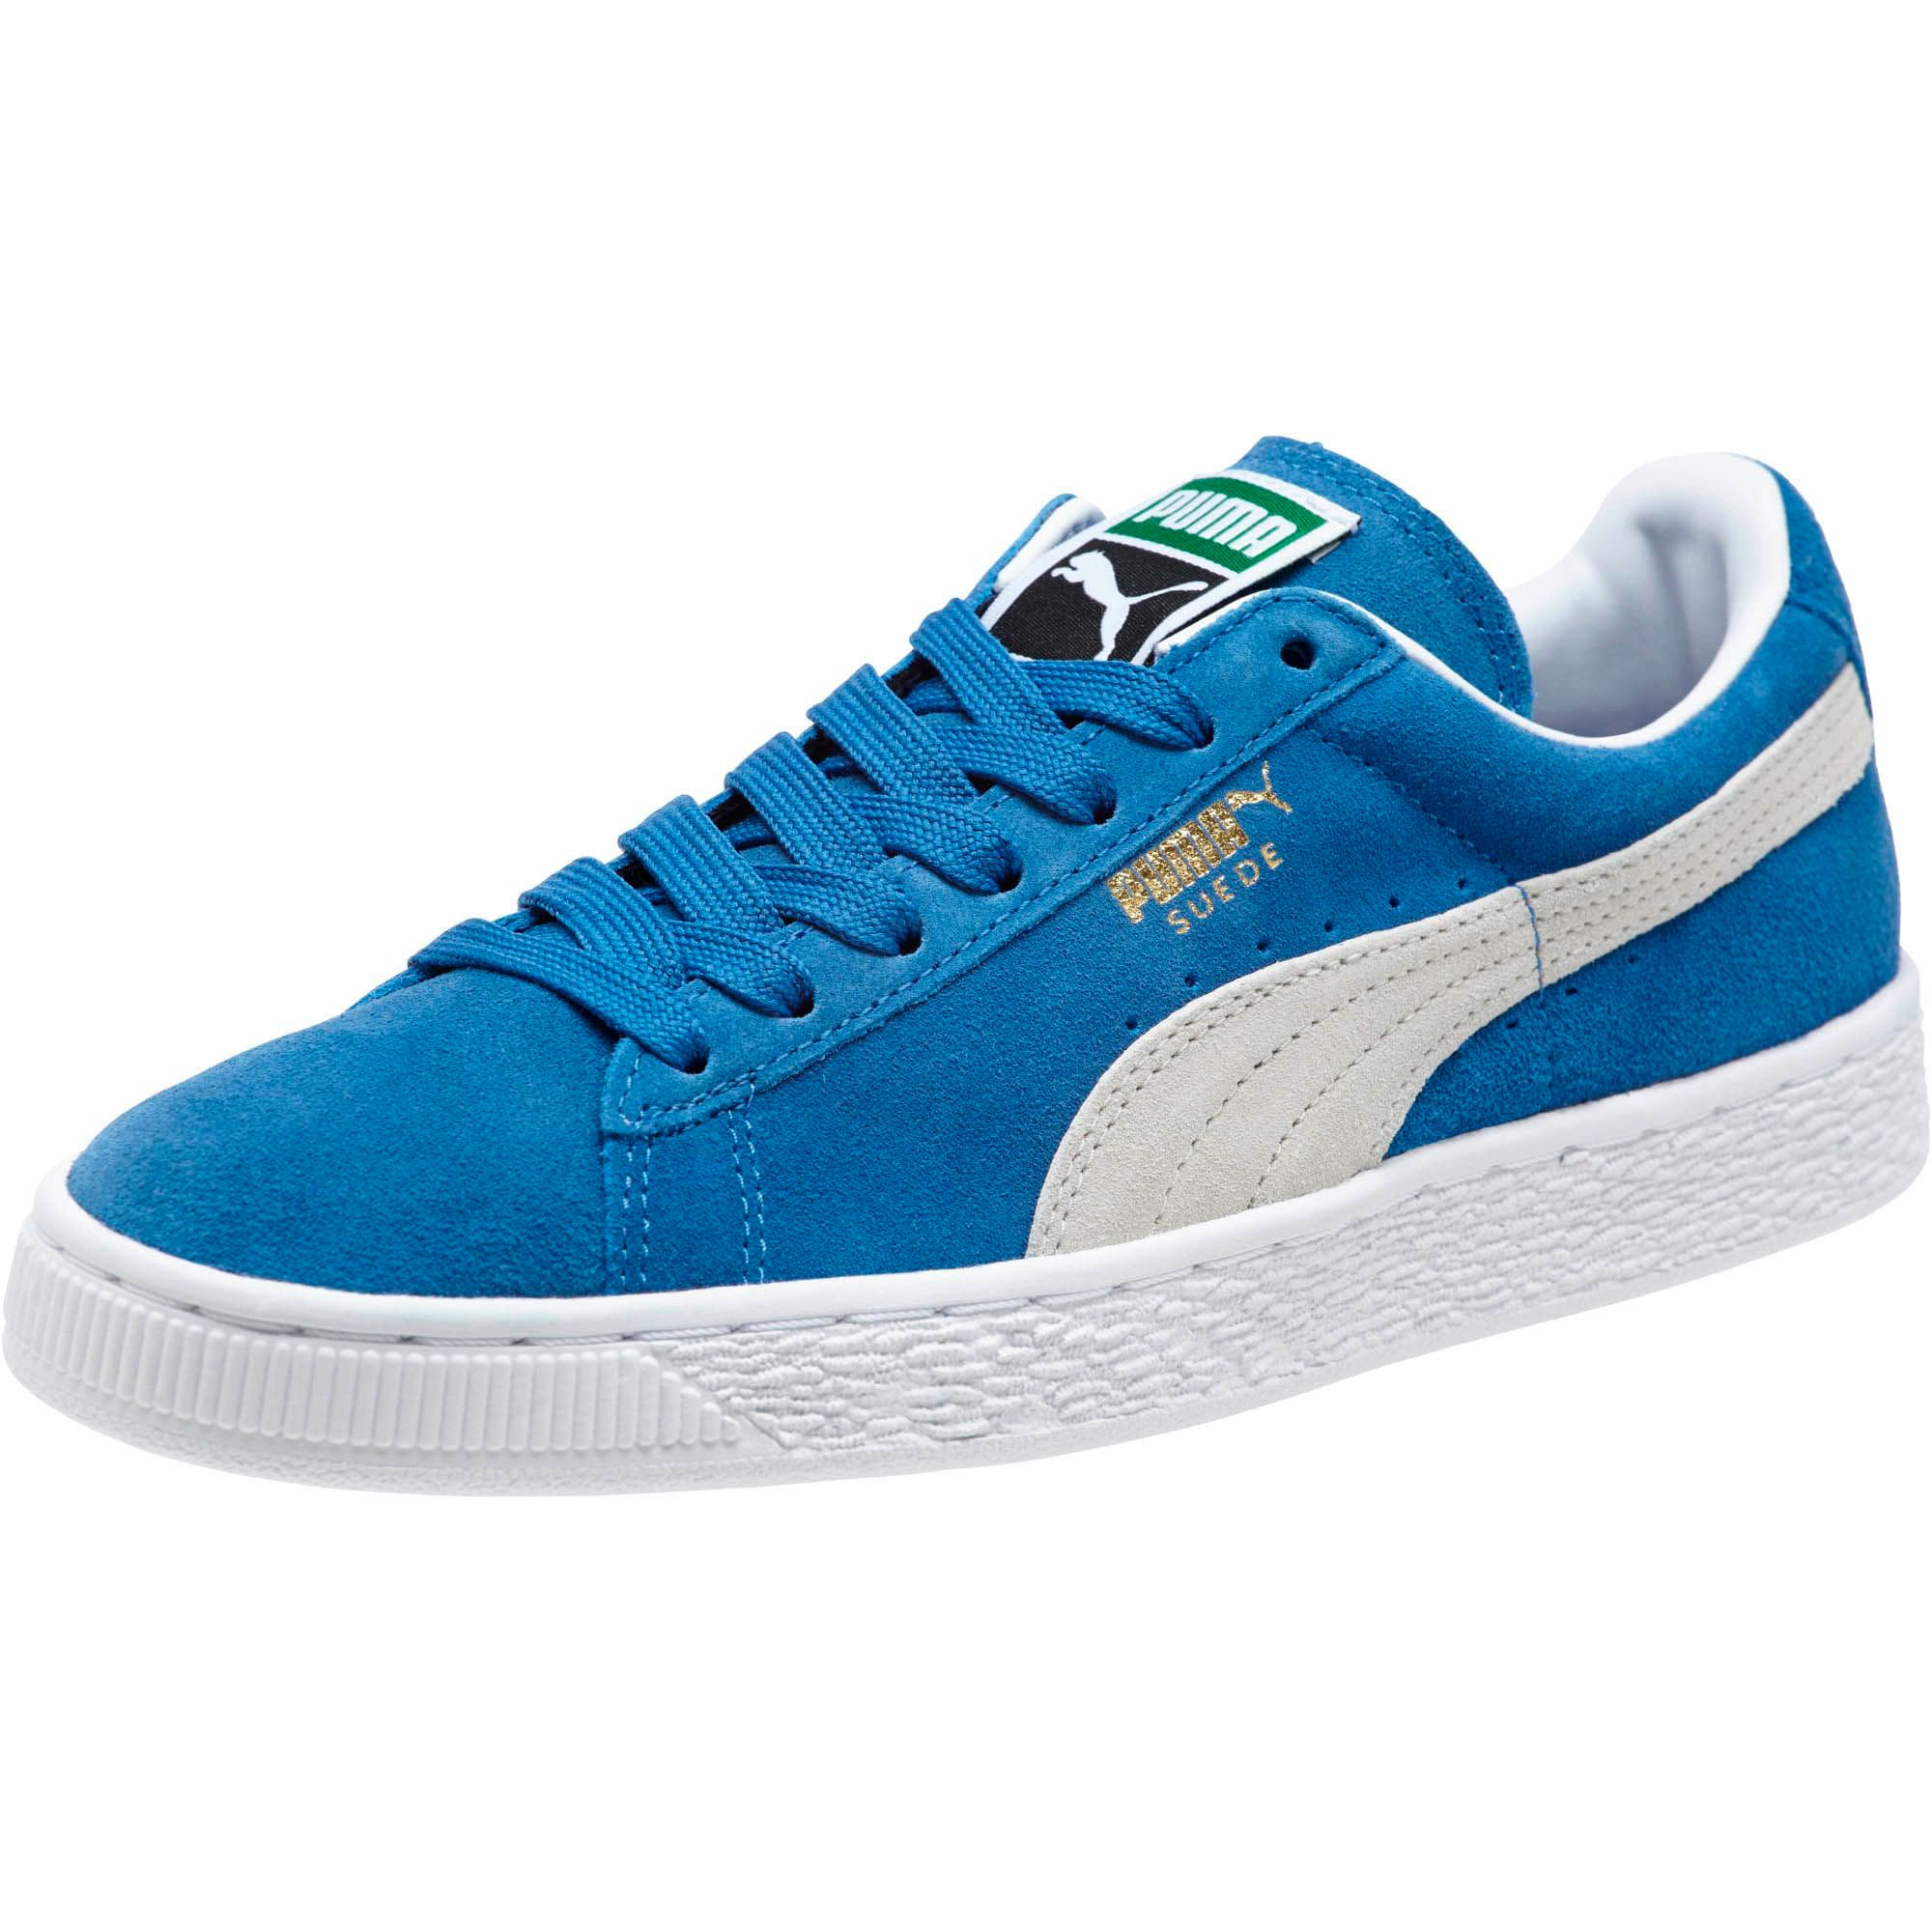 Thumbnail 1 of Suede Classic + Women's Sneakers, olympian blue-white, medium